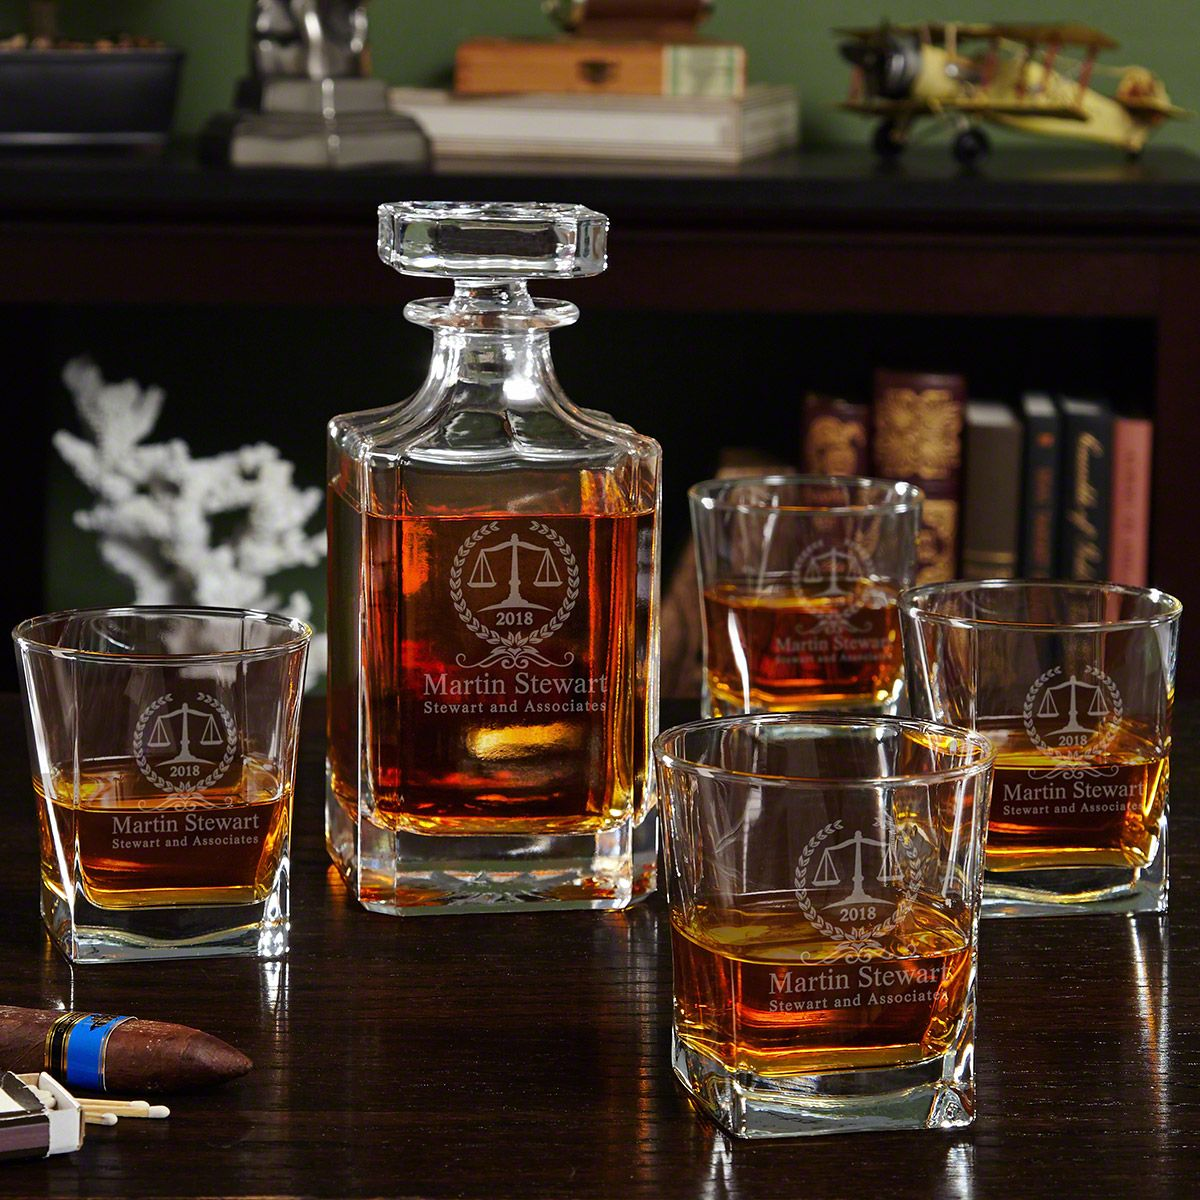 Thurgood Personalized Whiskey Decanter and Glass Set